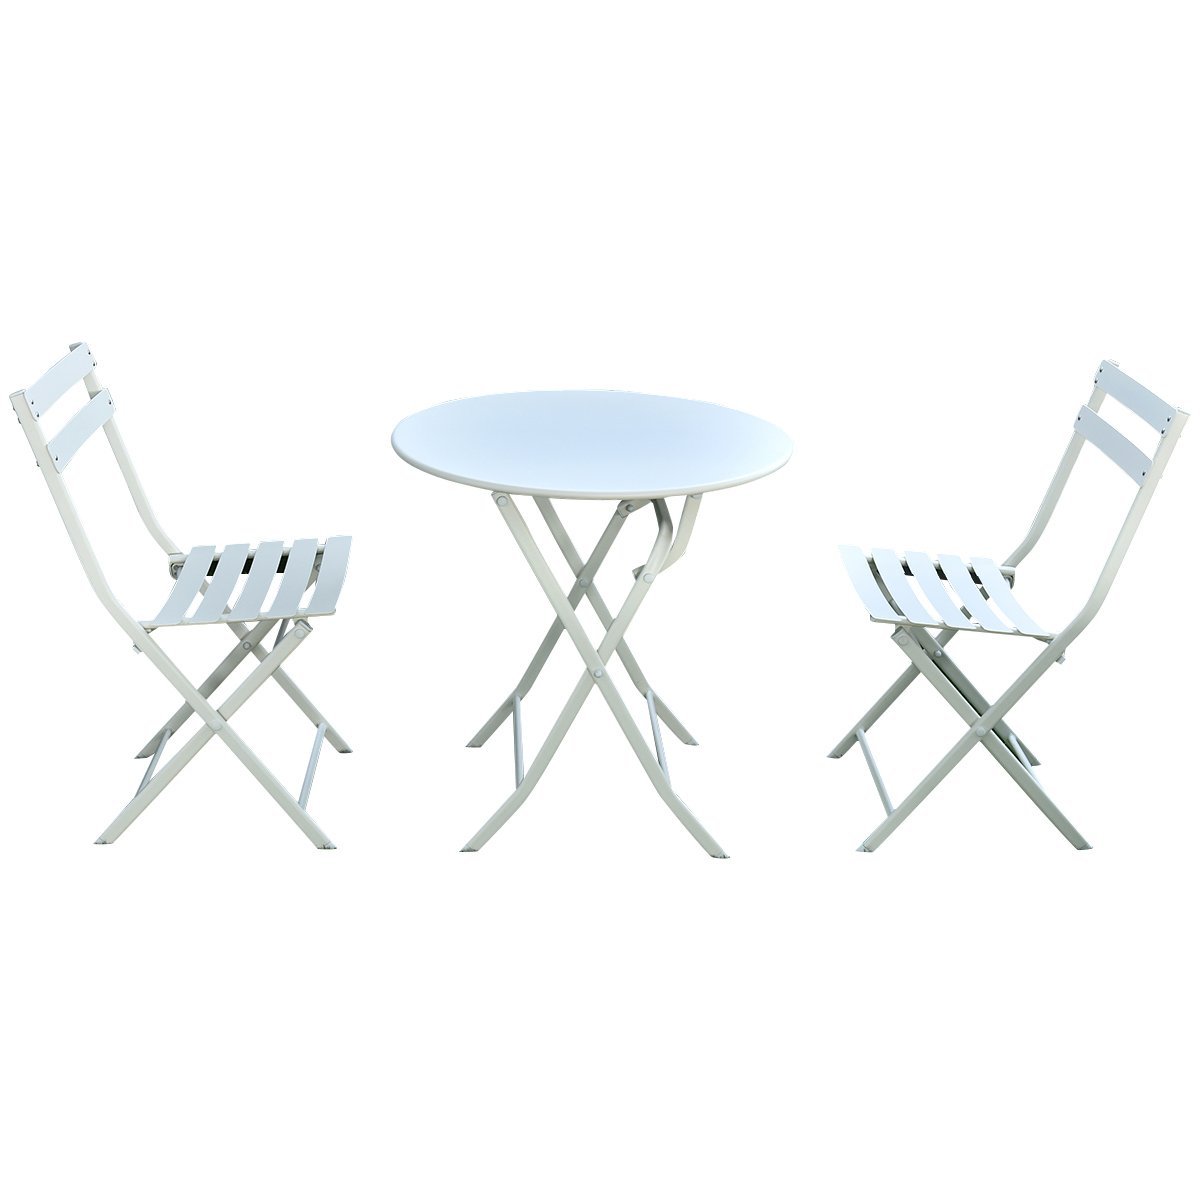 Giantex 3 PC Folding Bistro-Style Patio Table and Chair Set Outdoor Patio Garden Pool Backyard Furniture(White)